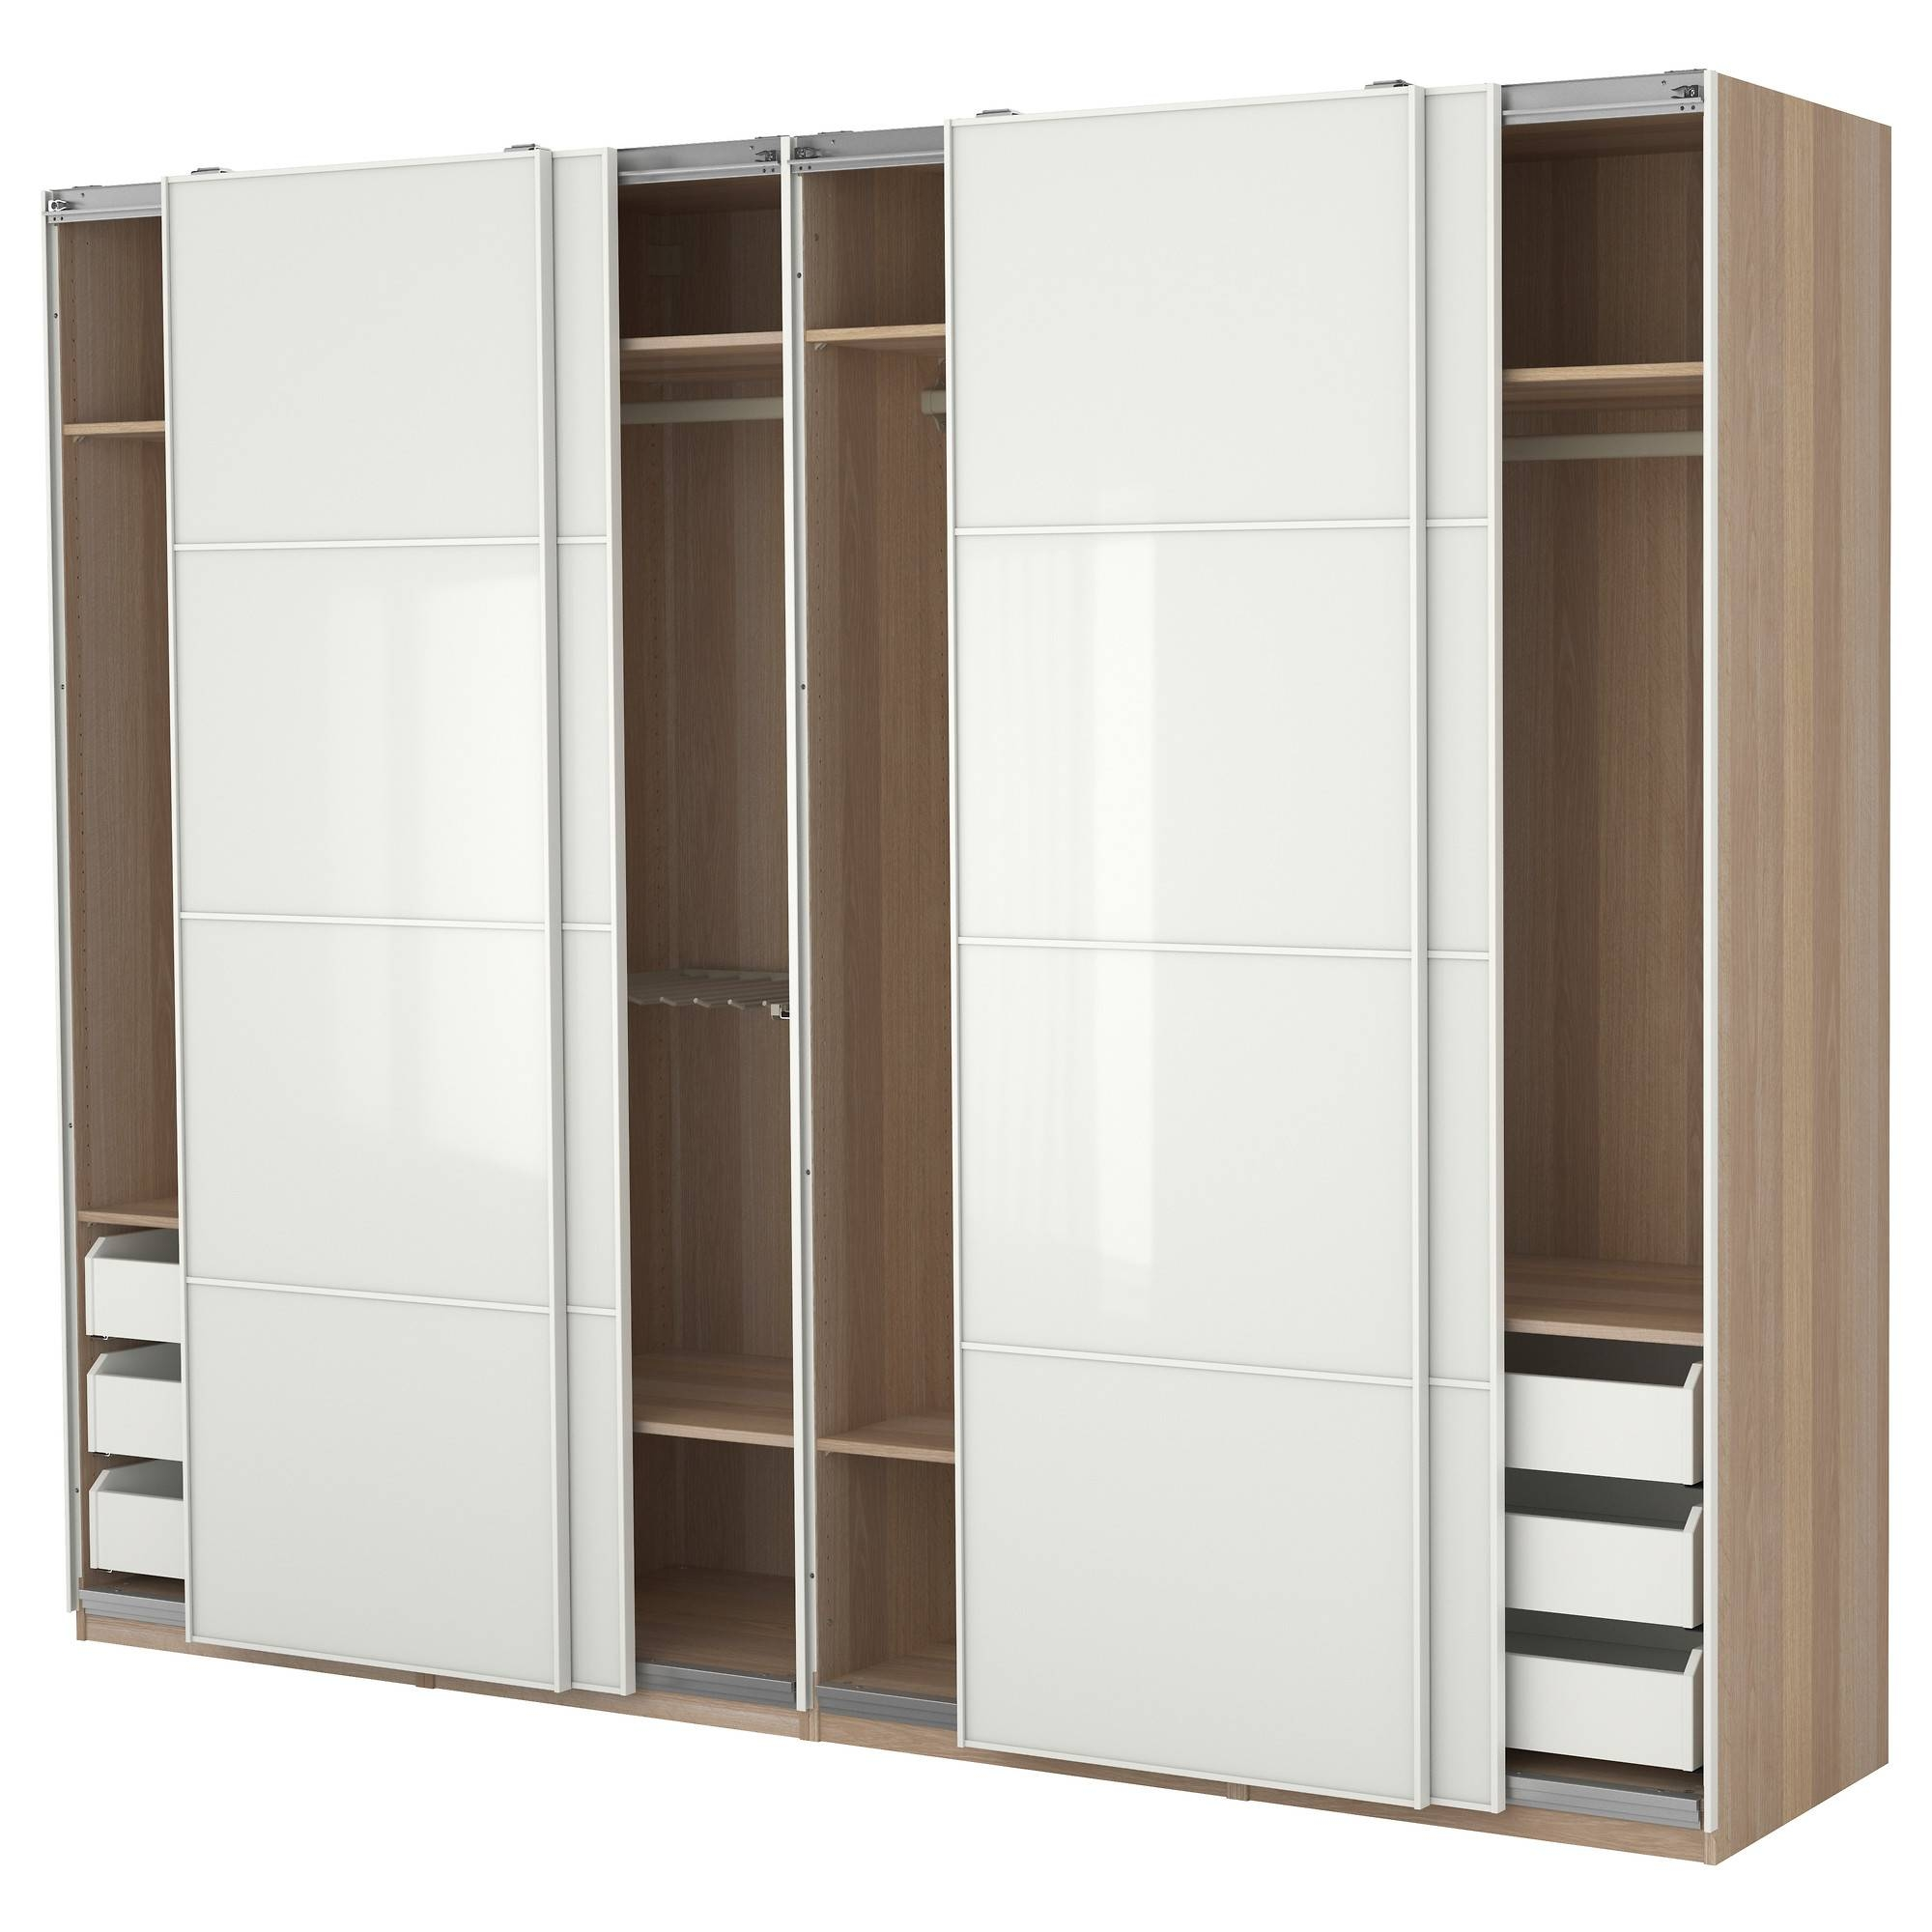 Door Wardrobe 3 Door Freestanding Large Wardrobes Sliding Doors in Cheap 3 Door Wardrobes (Image 6 of 15)